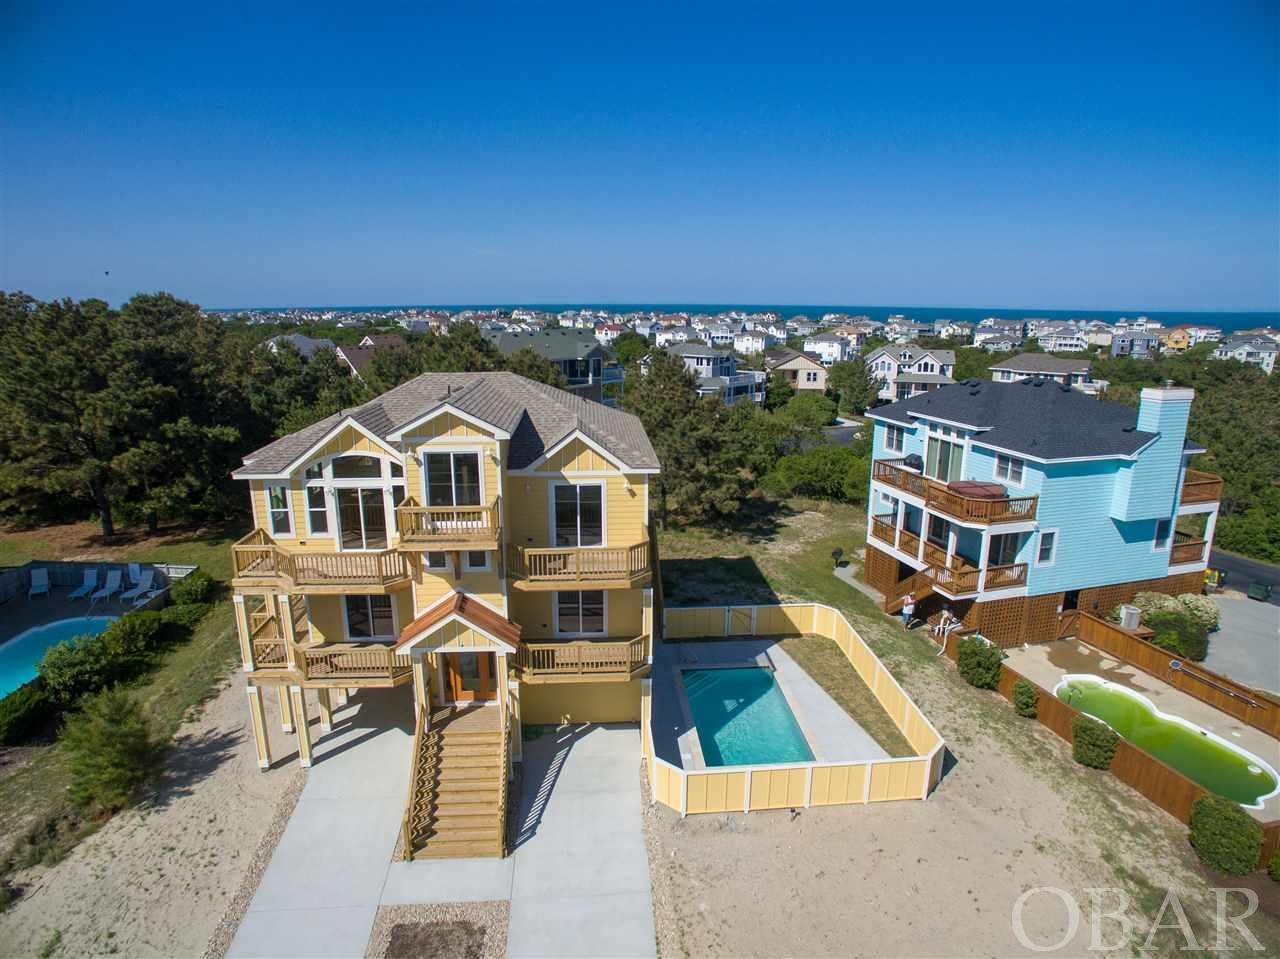 829 Monteray Drive, Corolla, NC 27927, 6 Bedrooms Bedrooms, ,5 BathroomsBathrooms,Residential,For sale,Monteray Drive,104598